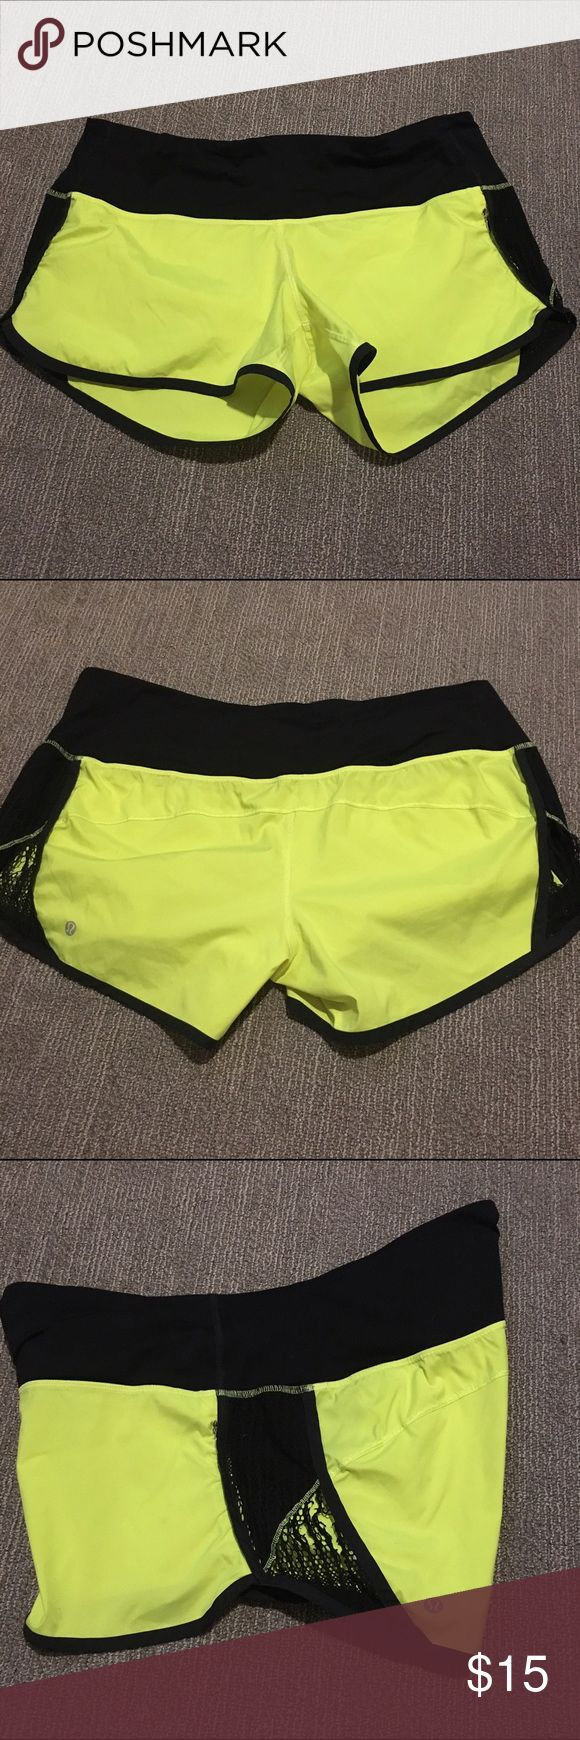 Lululemon Neon Yellow Athletic Shorts Lululemon Neon Yellow Athletic Shorts. Size 12. Has two pockets in the front and one zippered pocket on the side. Lace on sides has some rips in them (not the best idea to put lace on athletic shorts IMO). Otherwise great condition. Really comfy. Took the tag off because it was annoying. lululemon athletica Shorts